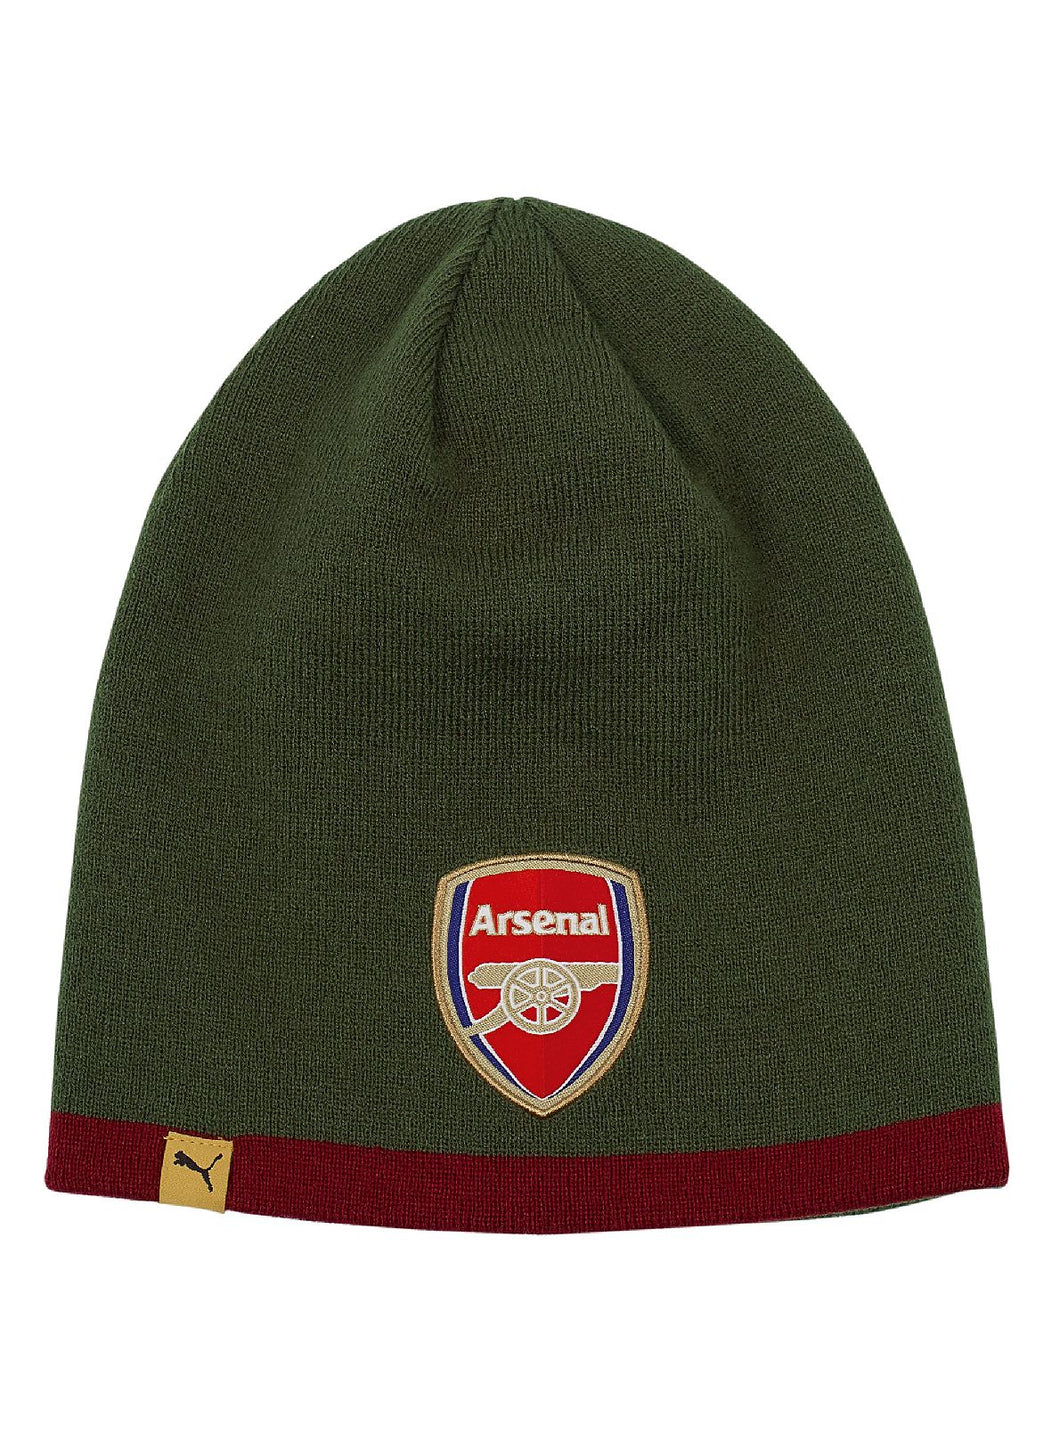 PUMA ARSENAL REVERSIBLE BEANIE